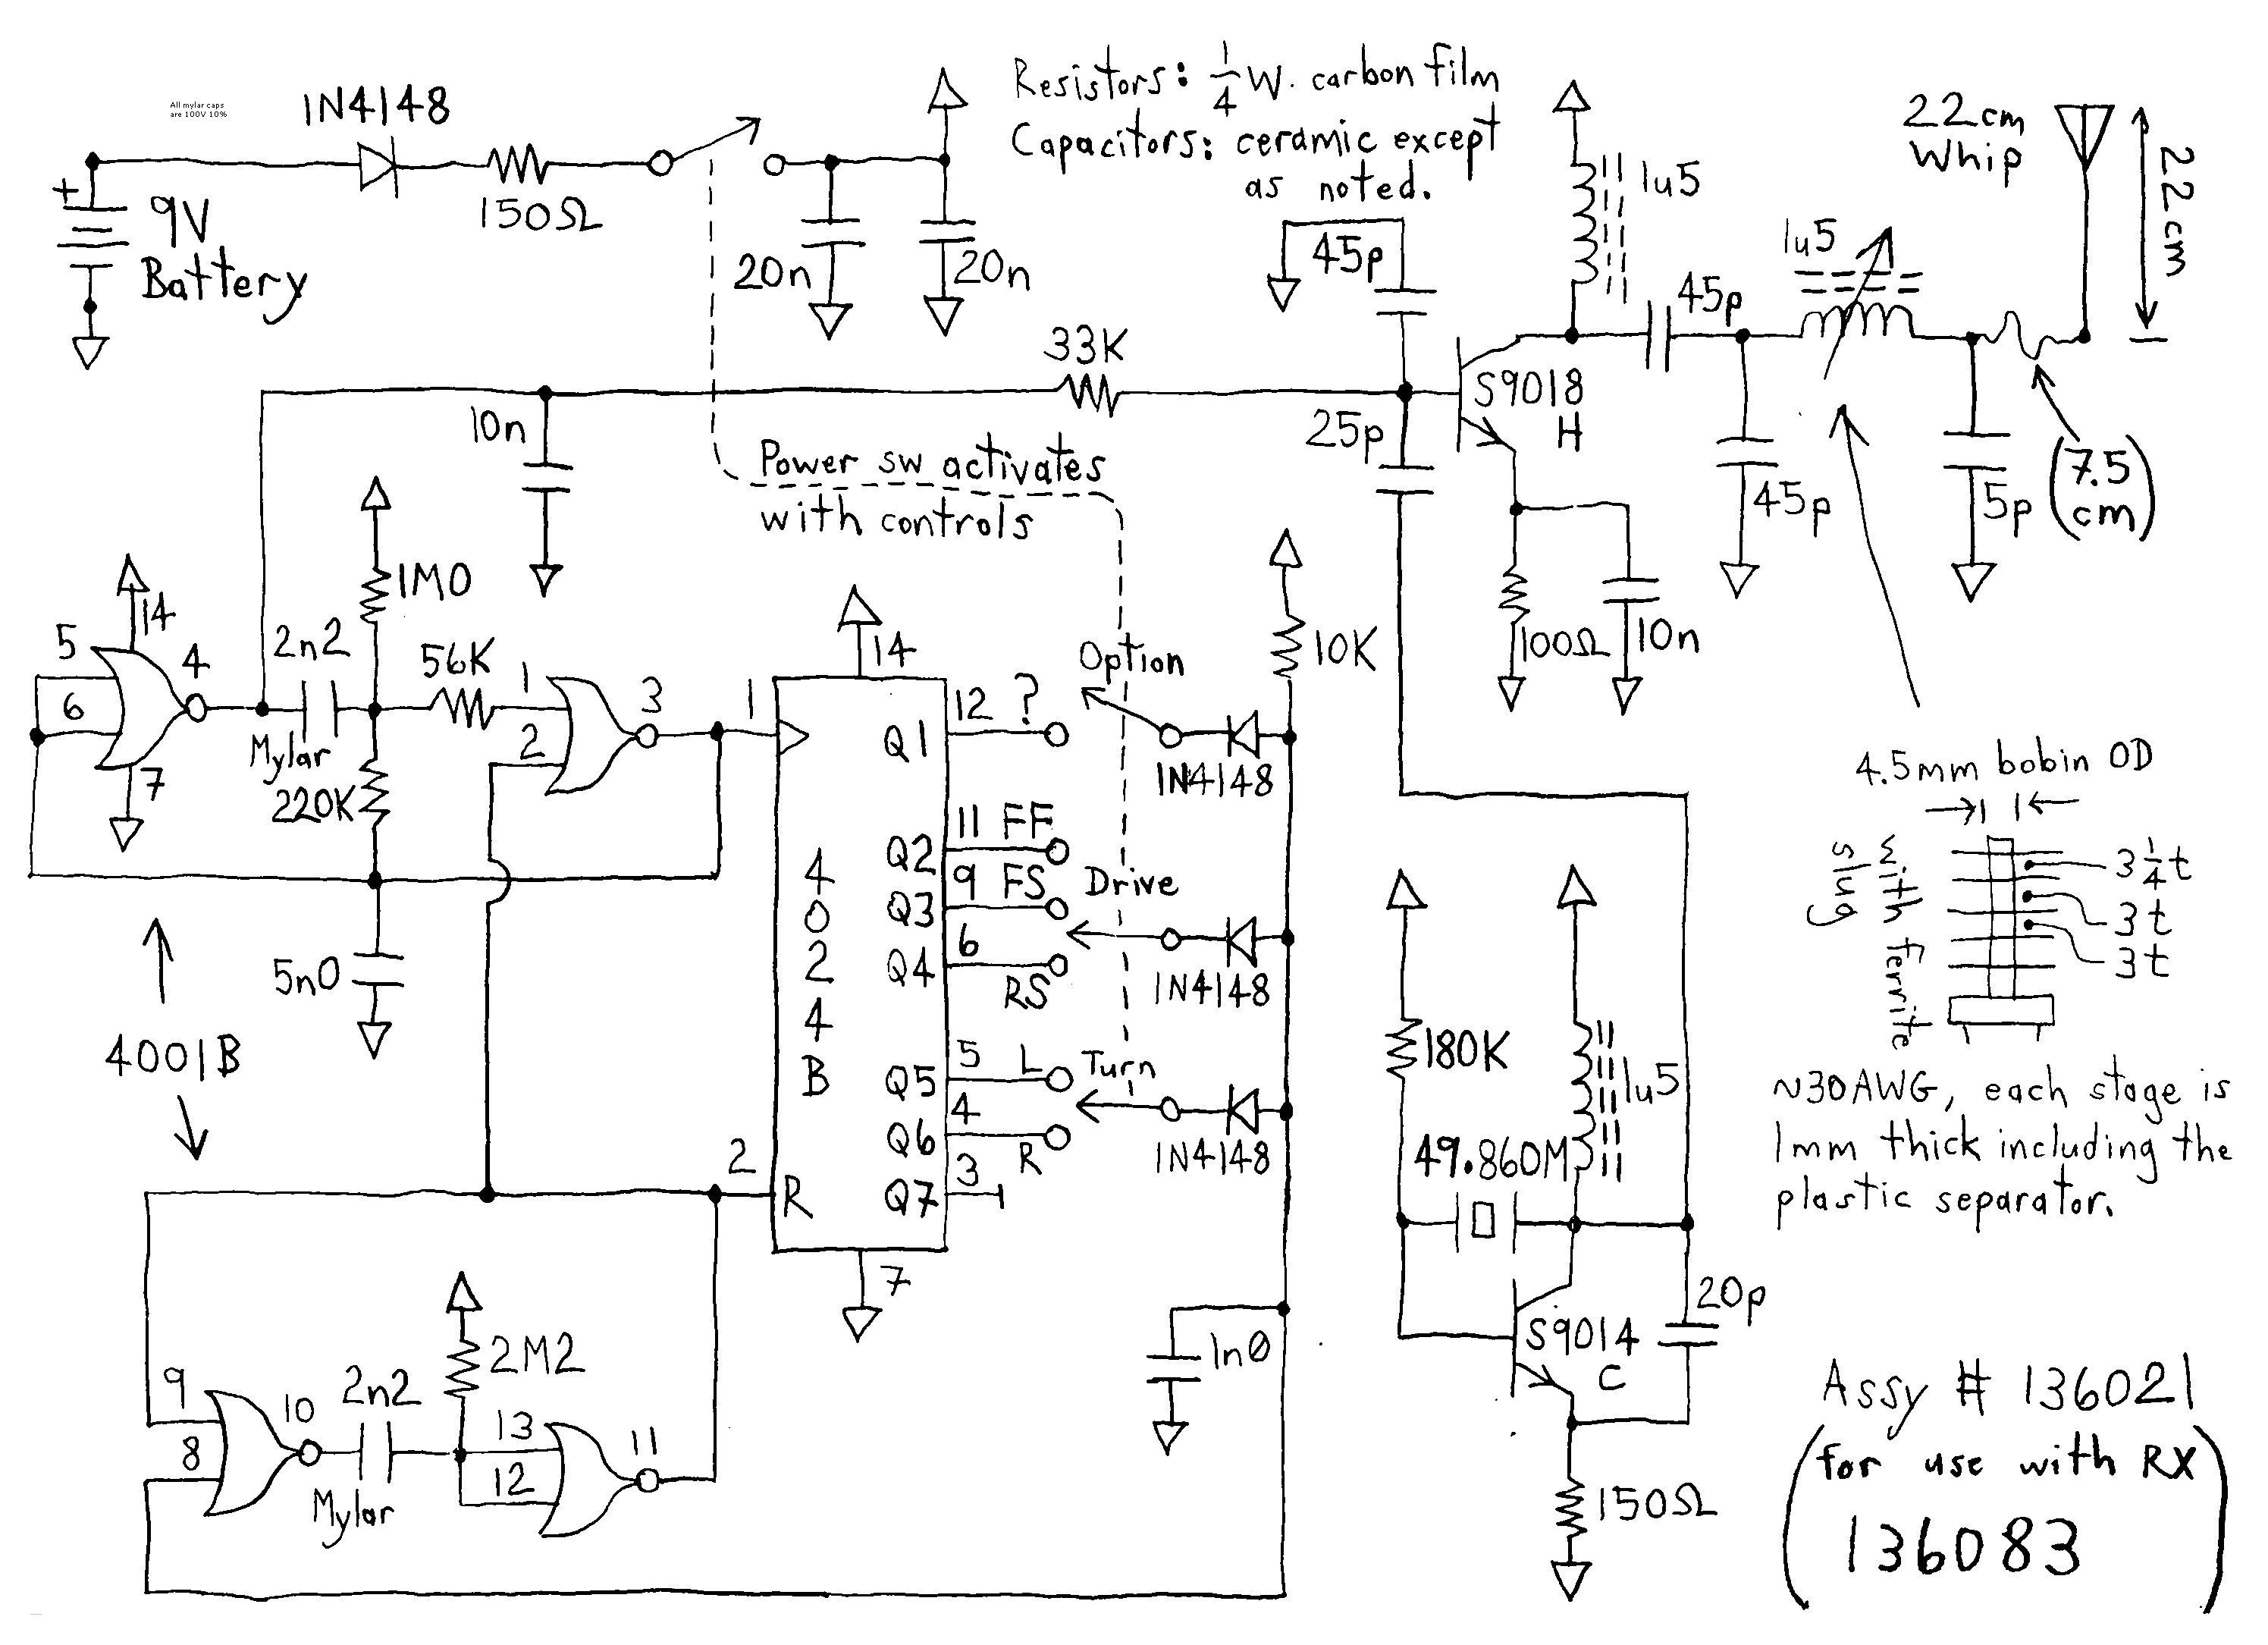 Circuit Diagram Maker Ks2 Diagram Diagramtemplate Diagramsample Circuito Electronico Electronica Circuito